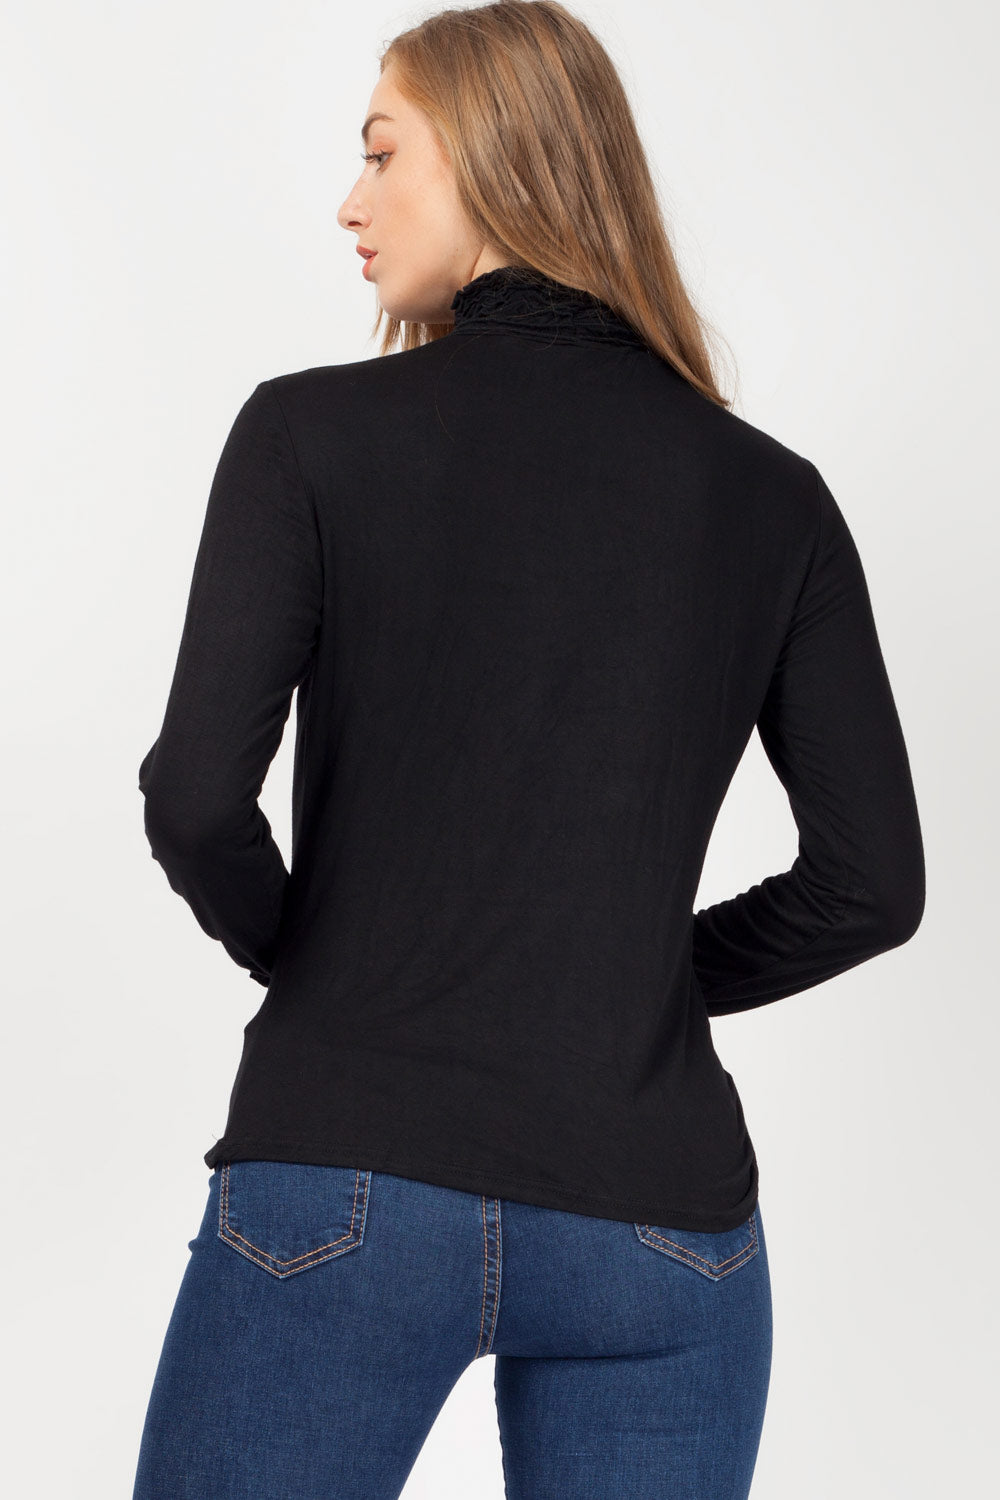 frill neck long sleeve top black uk